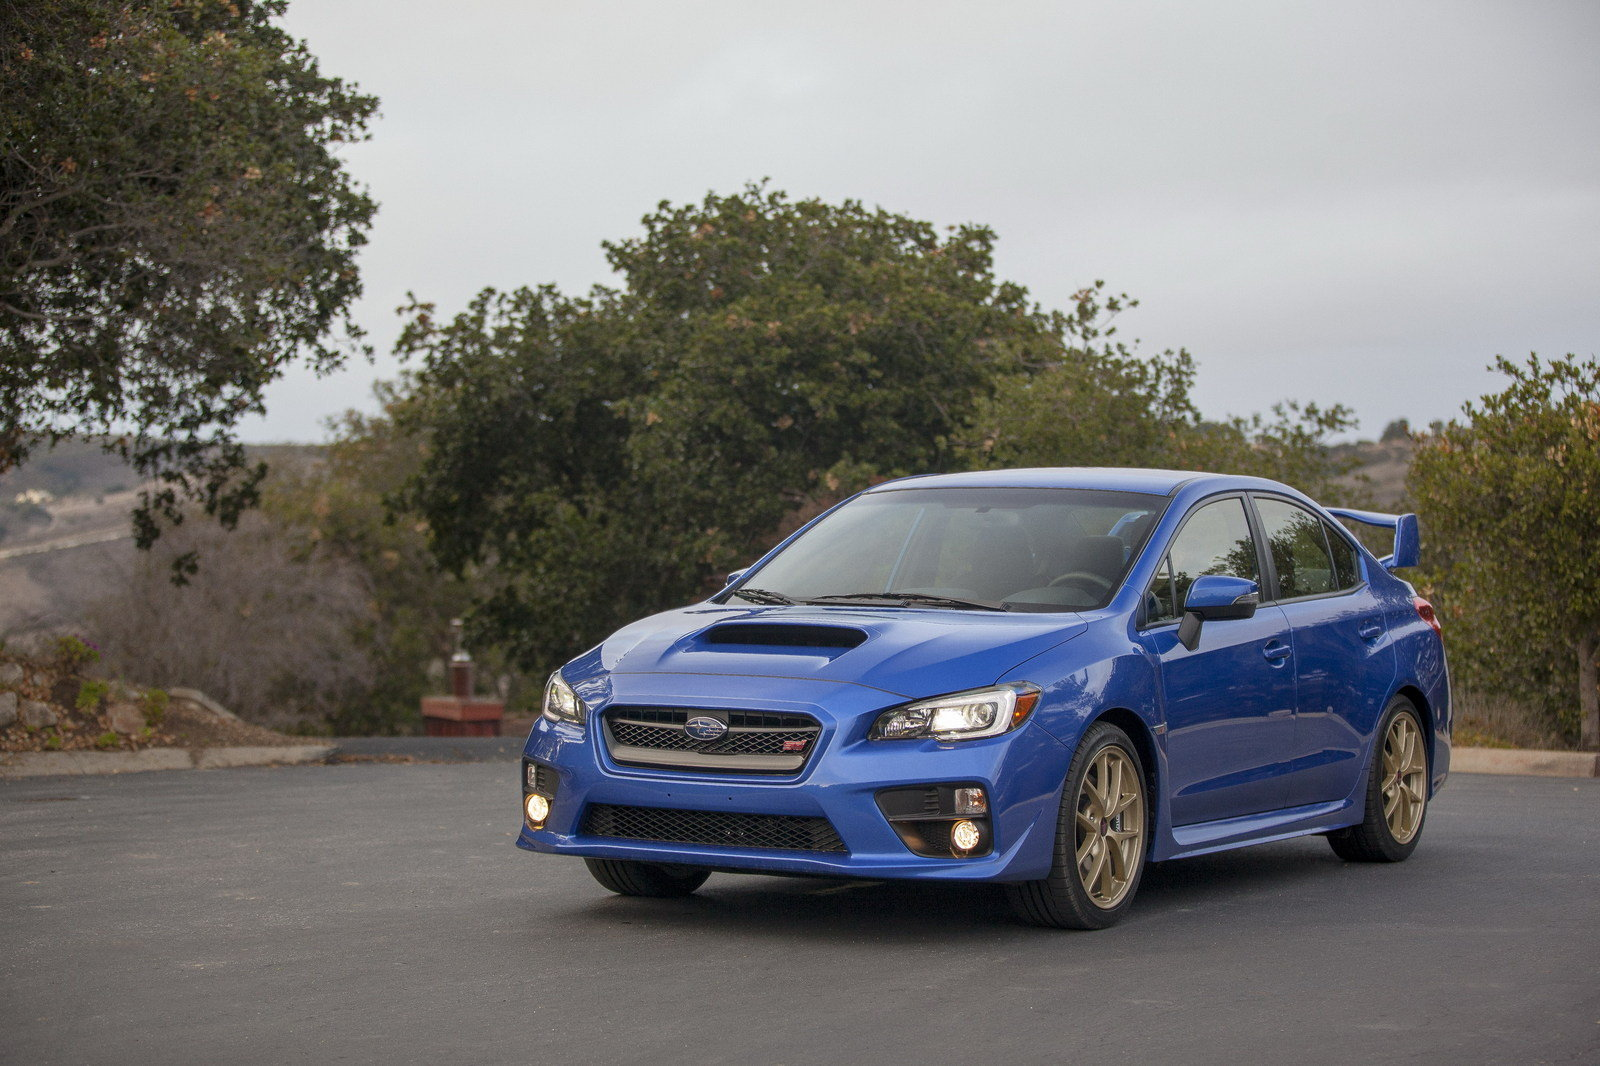 2015 - 2016 Subaru WRX STI Pictures, Photos, Wallpapers And